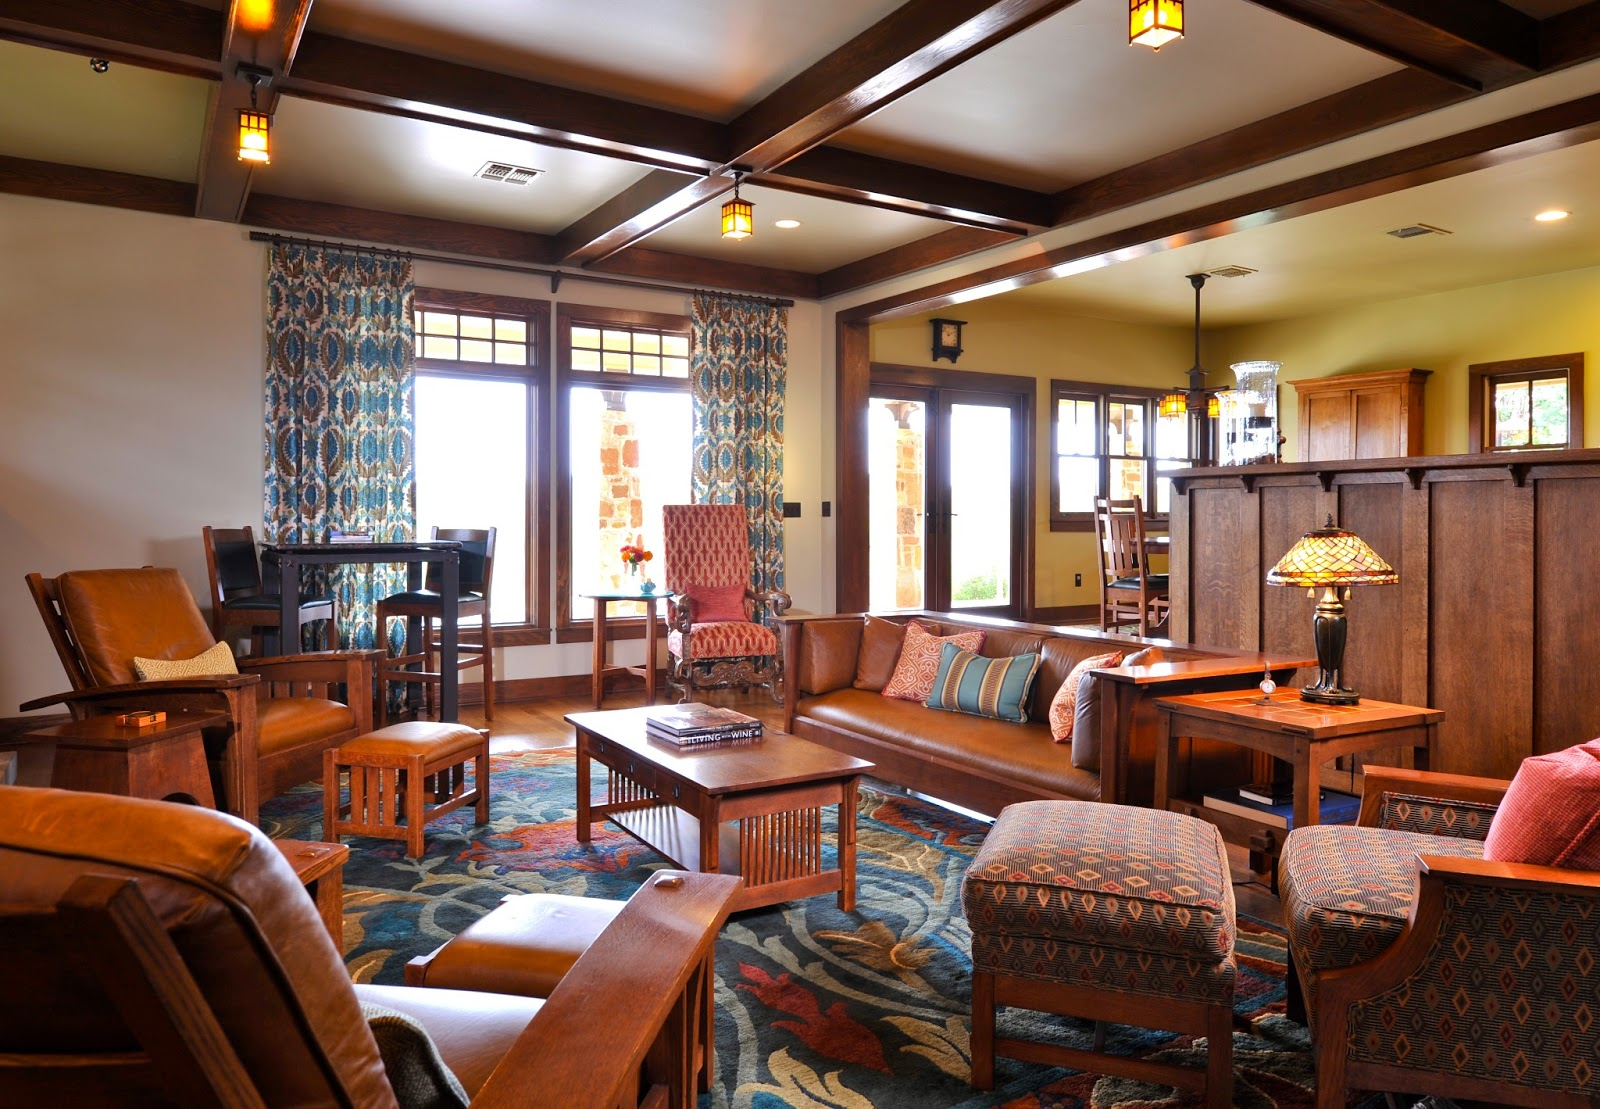 Nrinteriors Blogspot Comnicole Roberts Winmill Arts And Crafts Style Home Cordillera Ranch